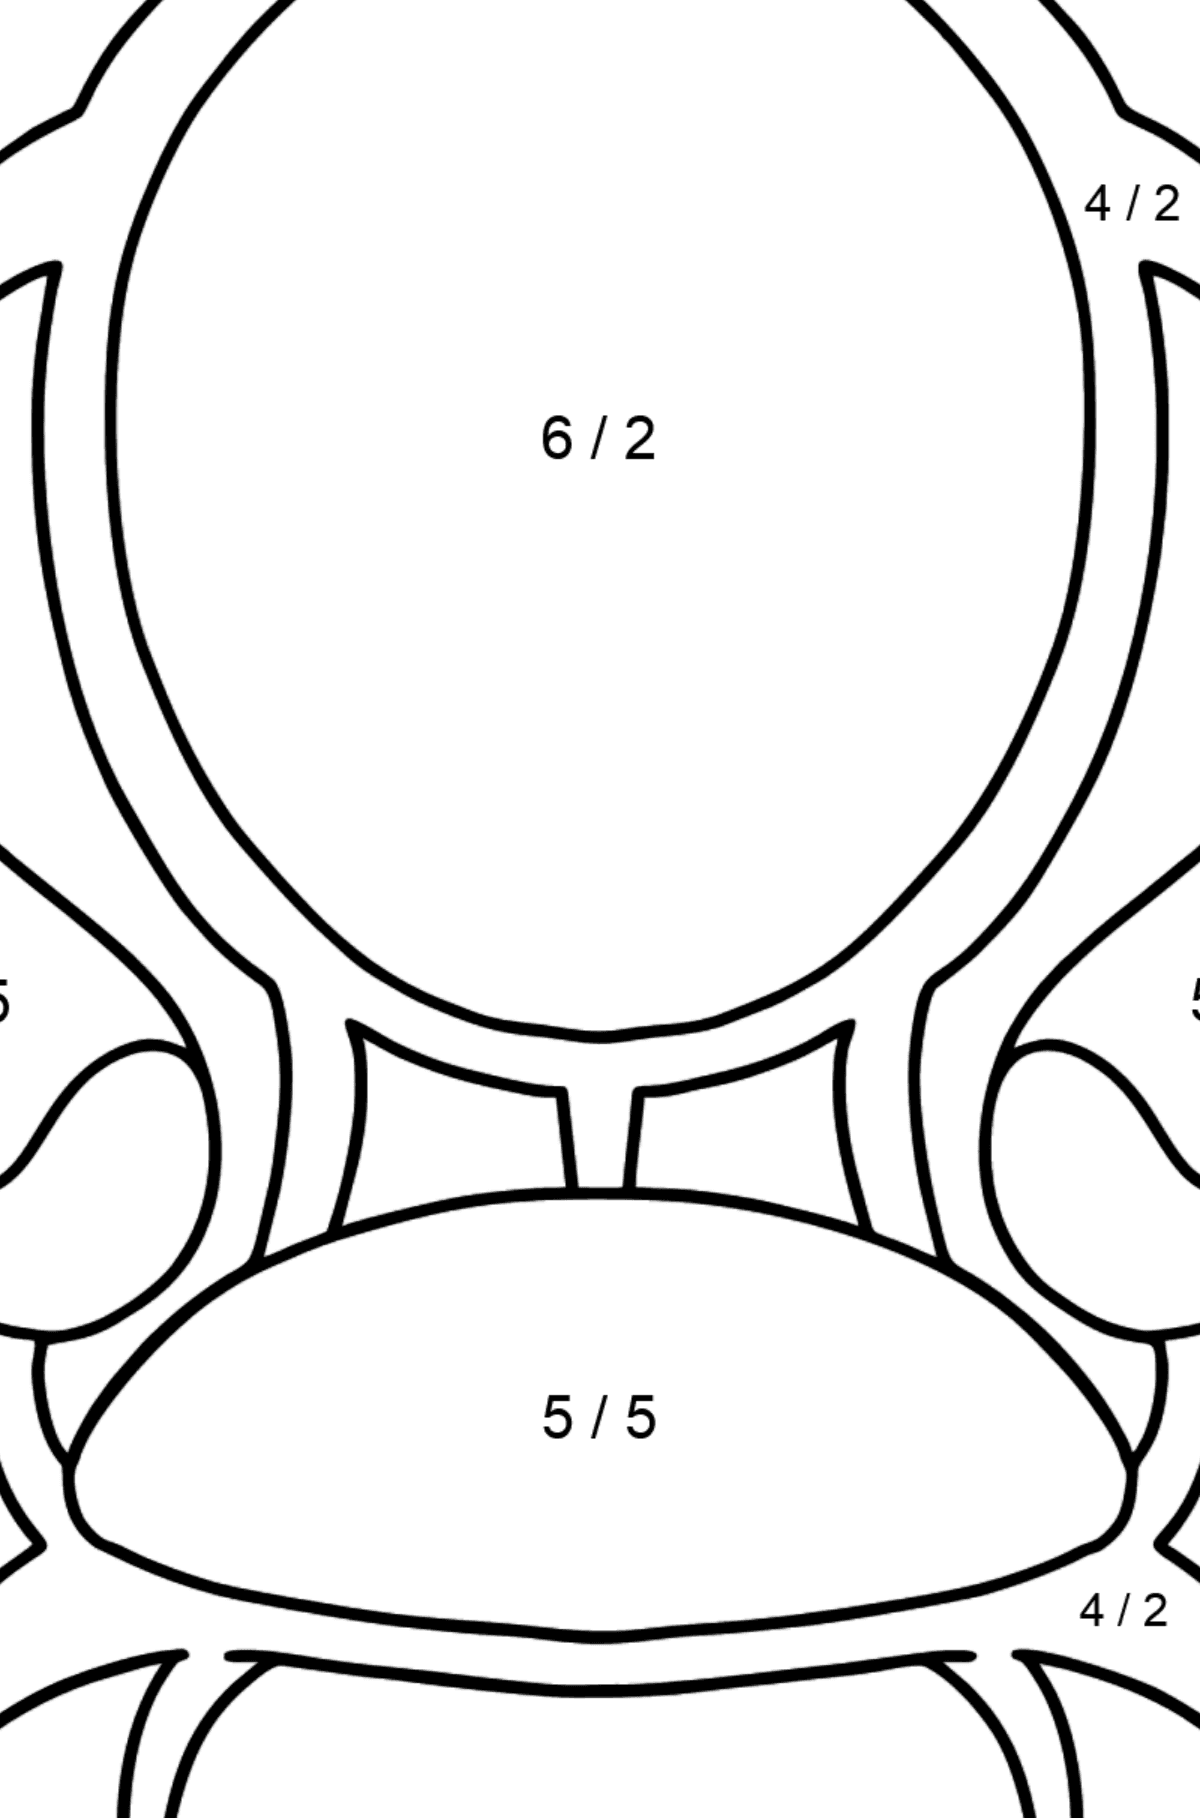 Soft Chair coloring page - Math Coloring - Division for Kids